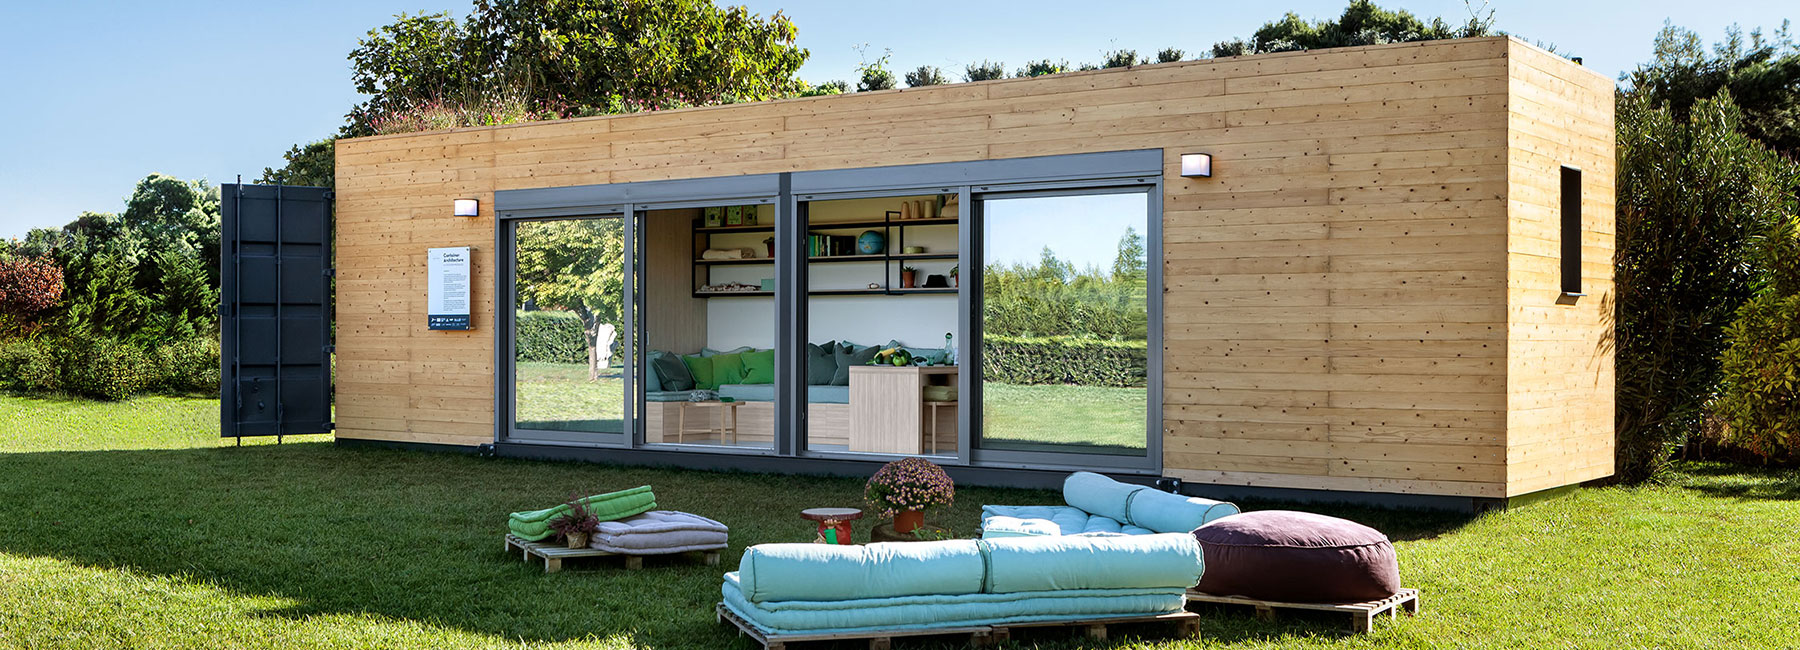 Container Haus Villa Cocoon Modules Coco Mat Envision Nomadic Dwelling With Container